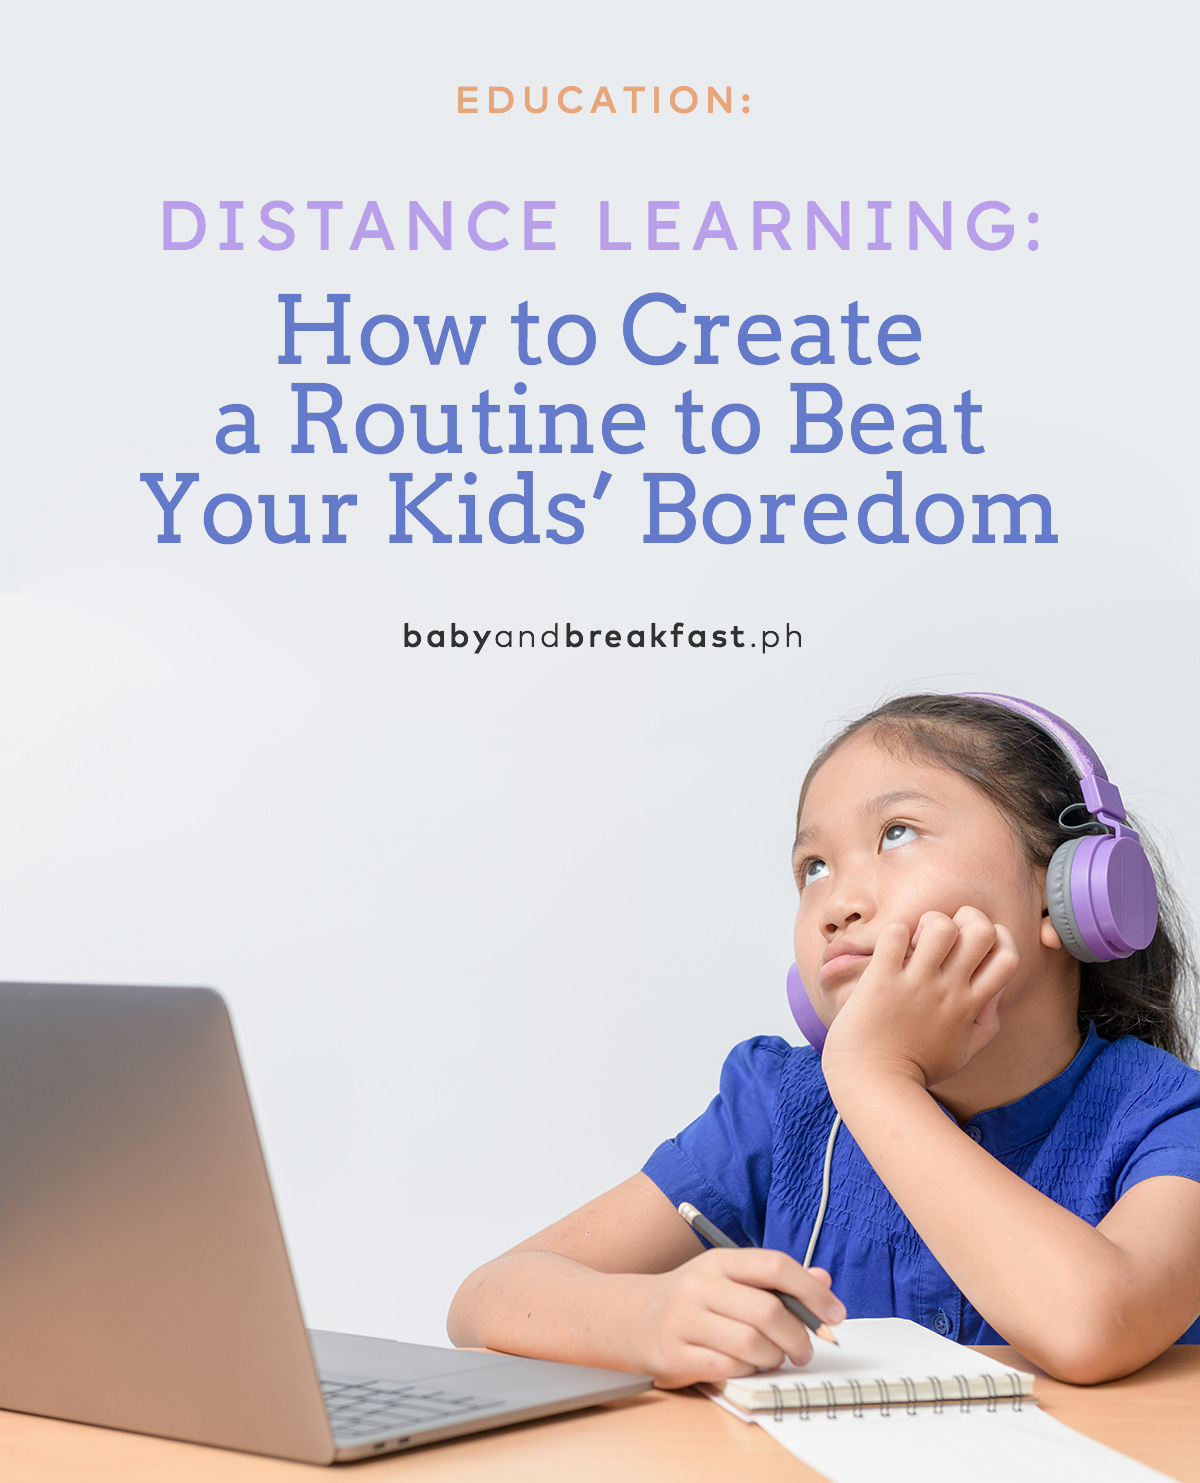 Distance Learning: How to Create a Routine to Beat Your Kids' Boredom